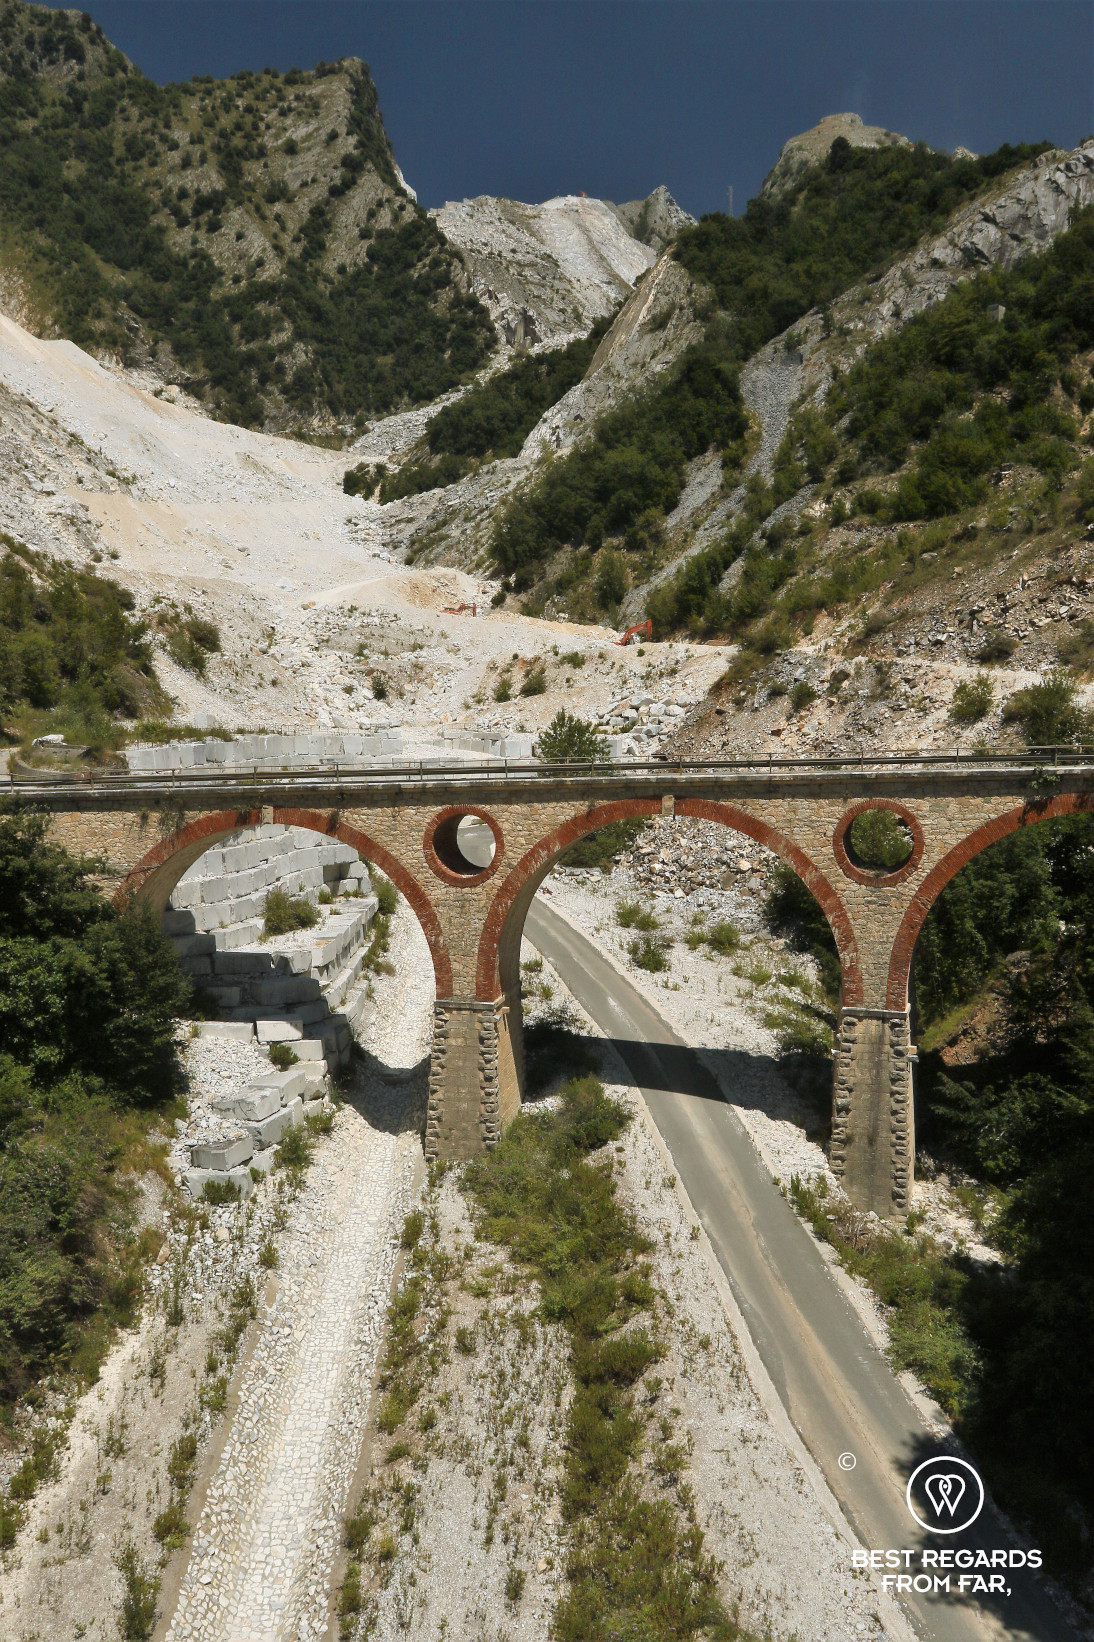 Old bridge over a white road in the mountains of Carrara, Italy